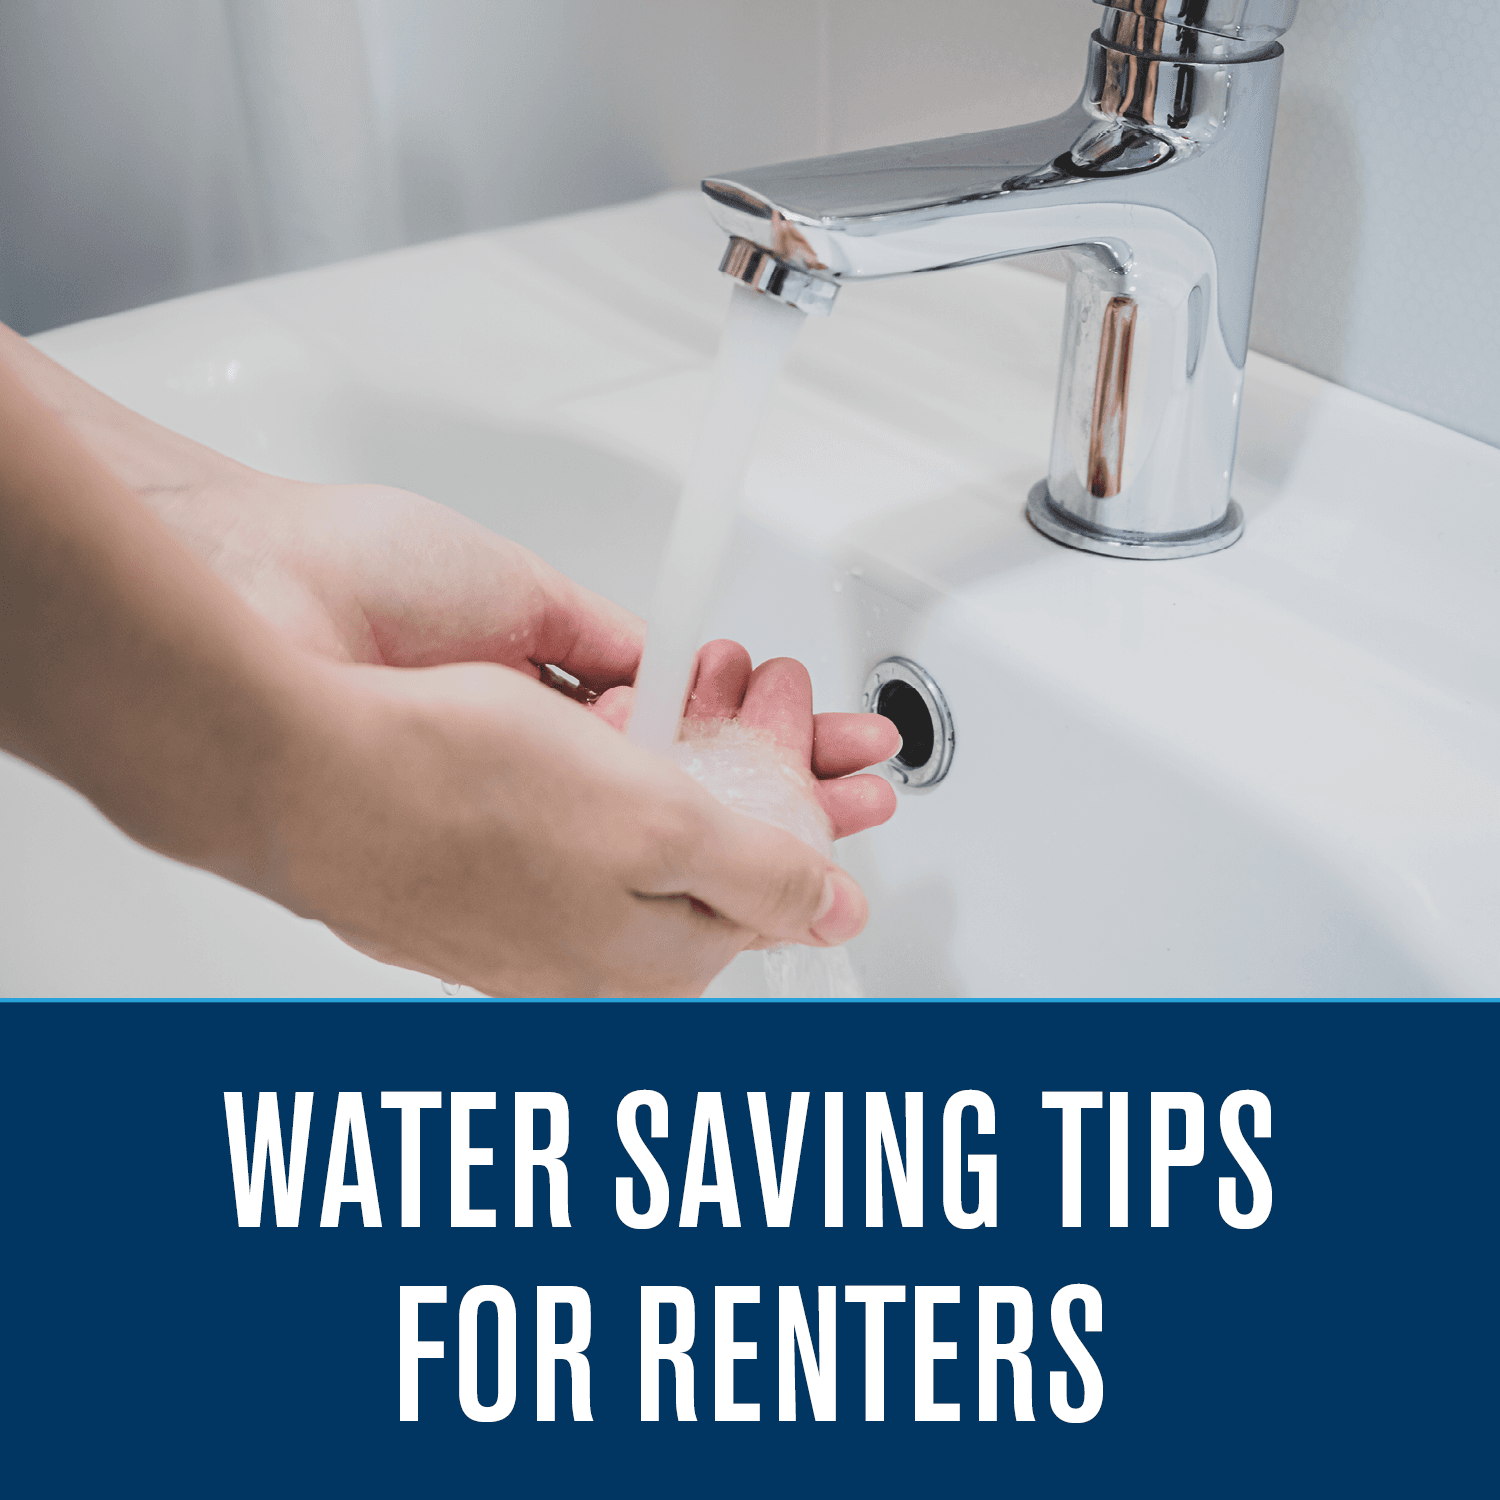 Water Saving Tips For Renters